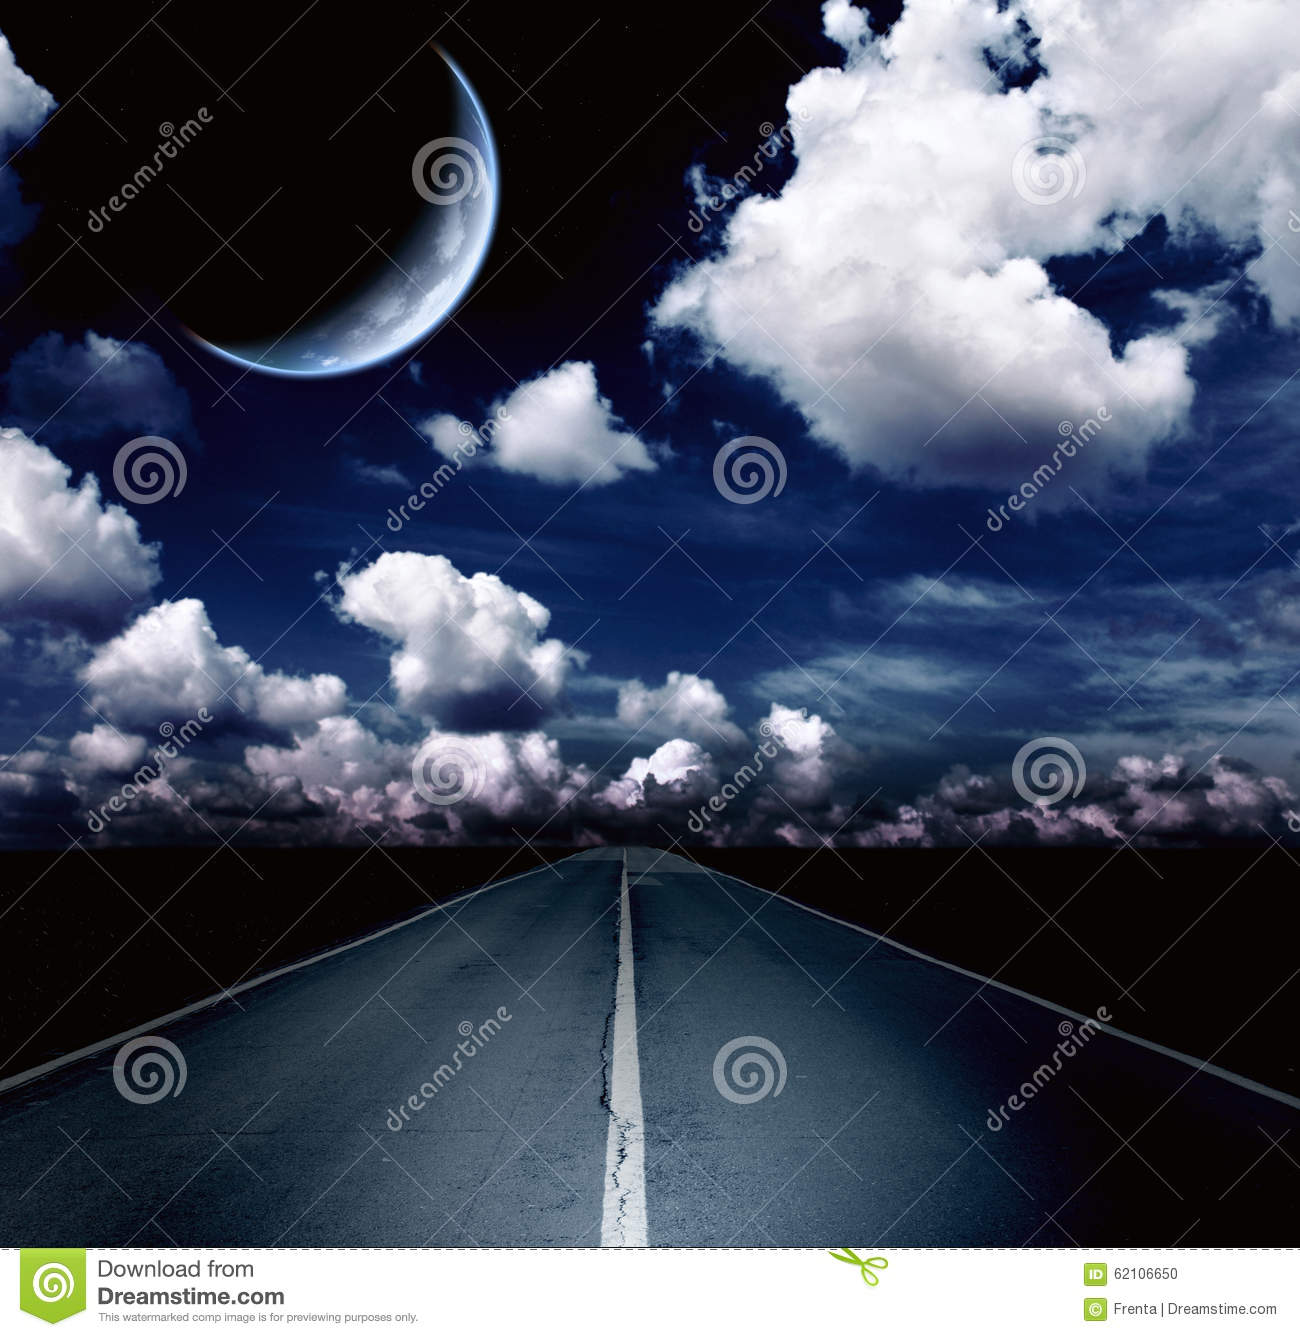 Night landscape with road, clouds and the moon